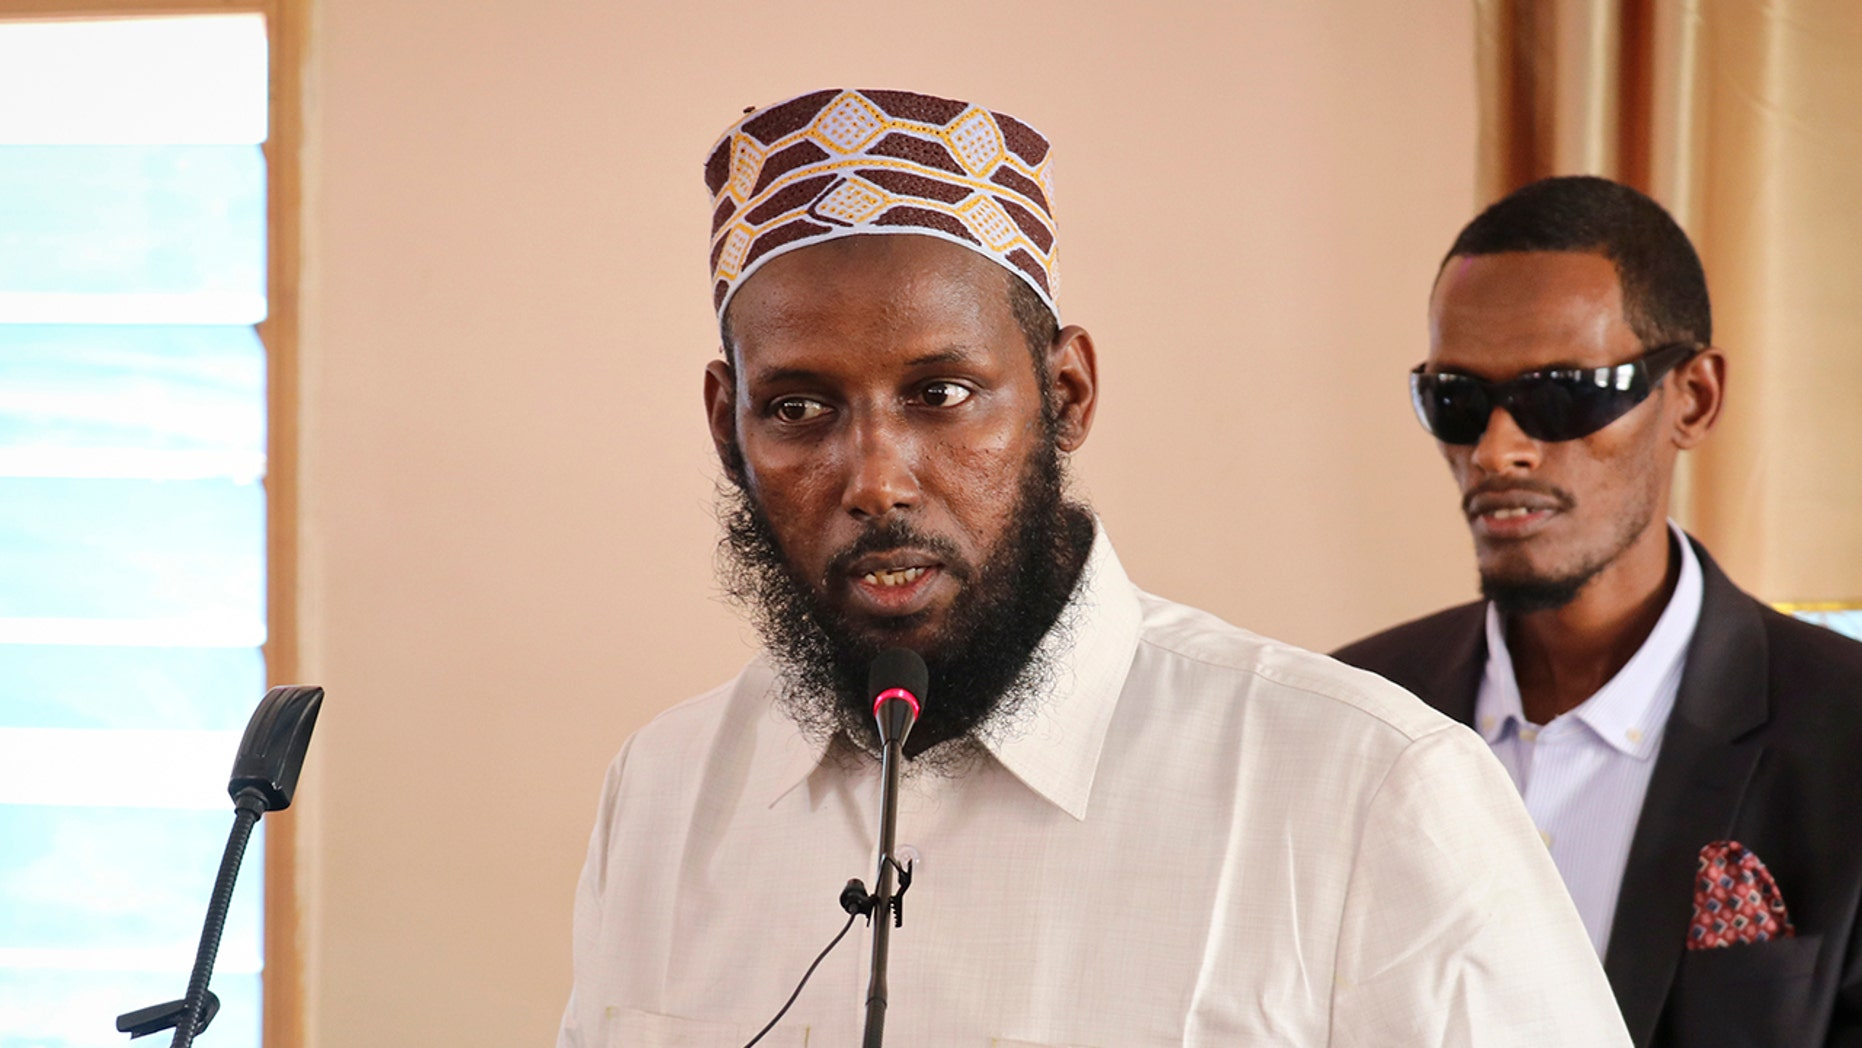 Spokesperson: Somali ex-militant running for regional presidency arrested